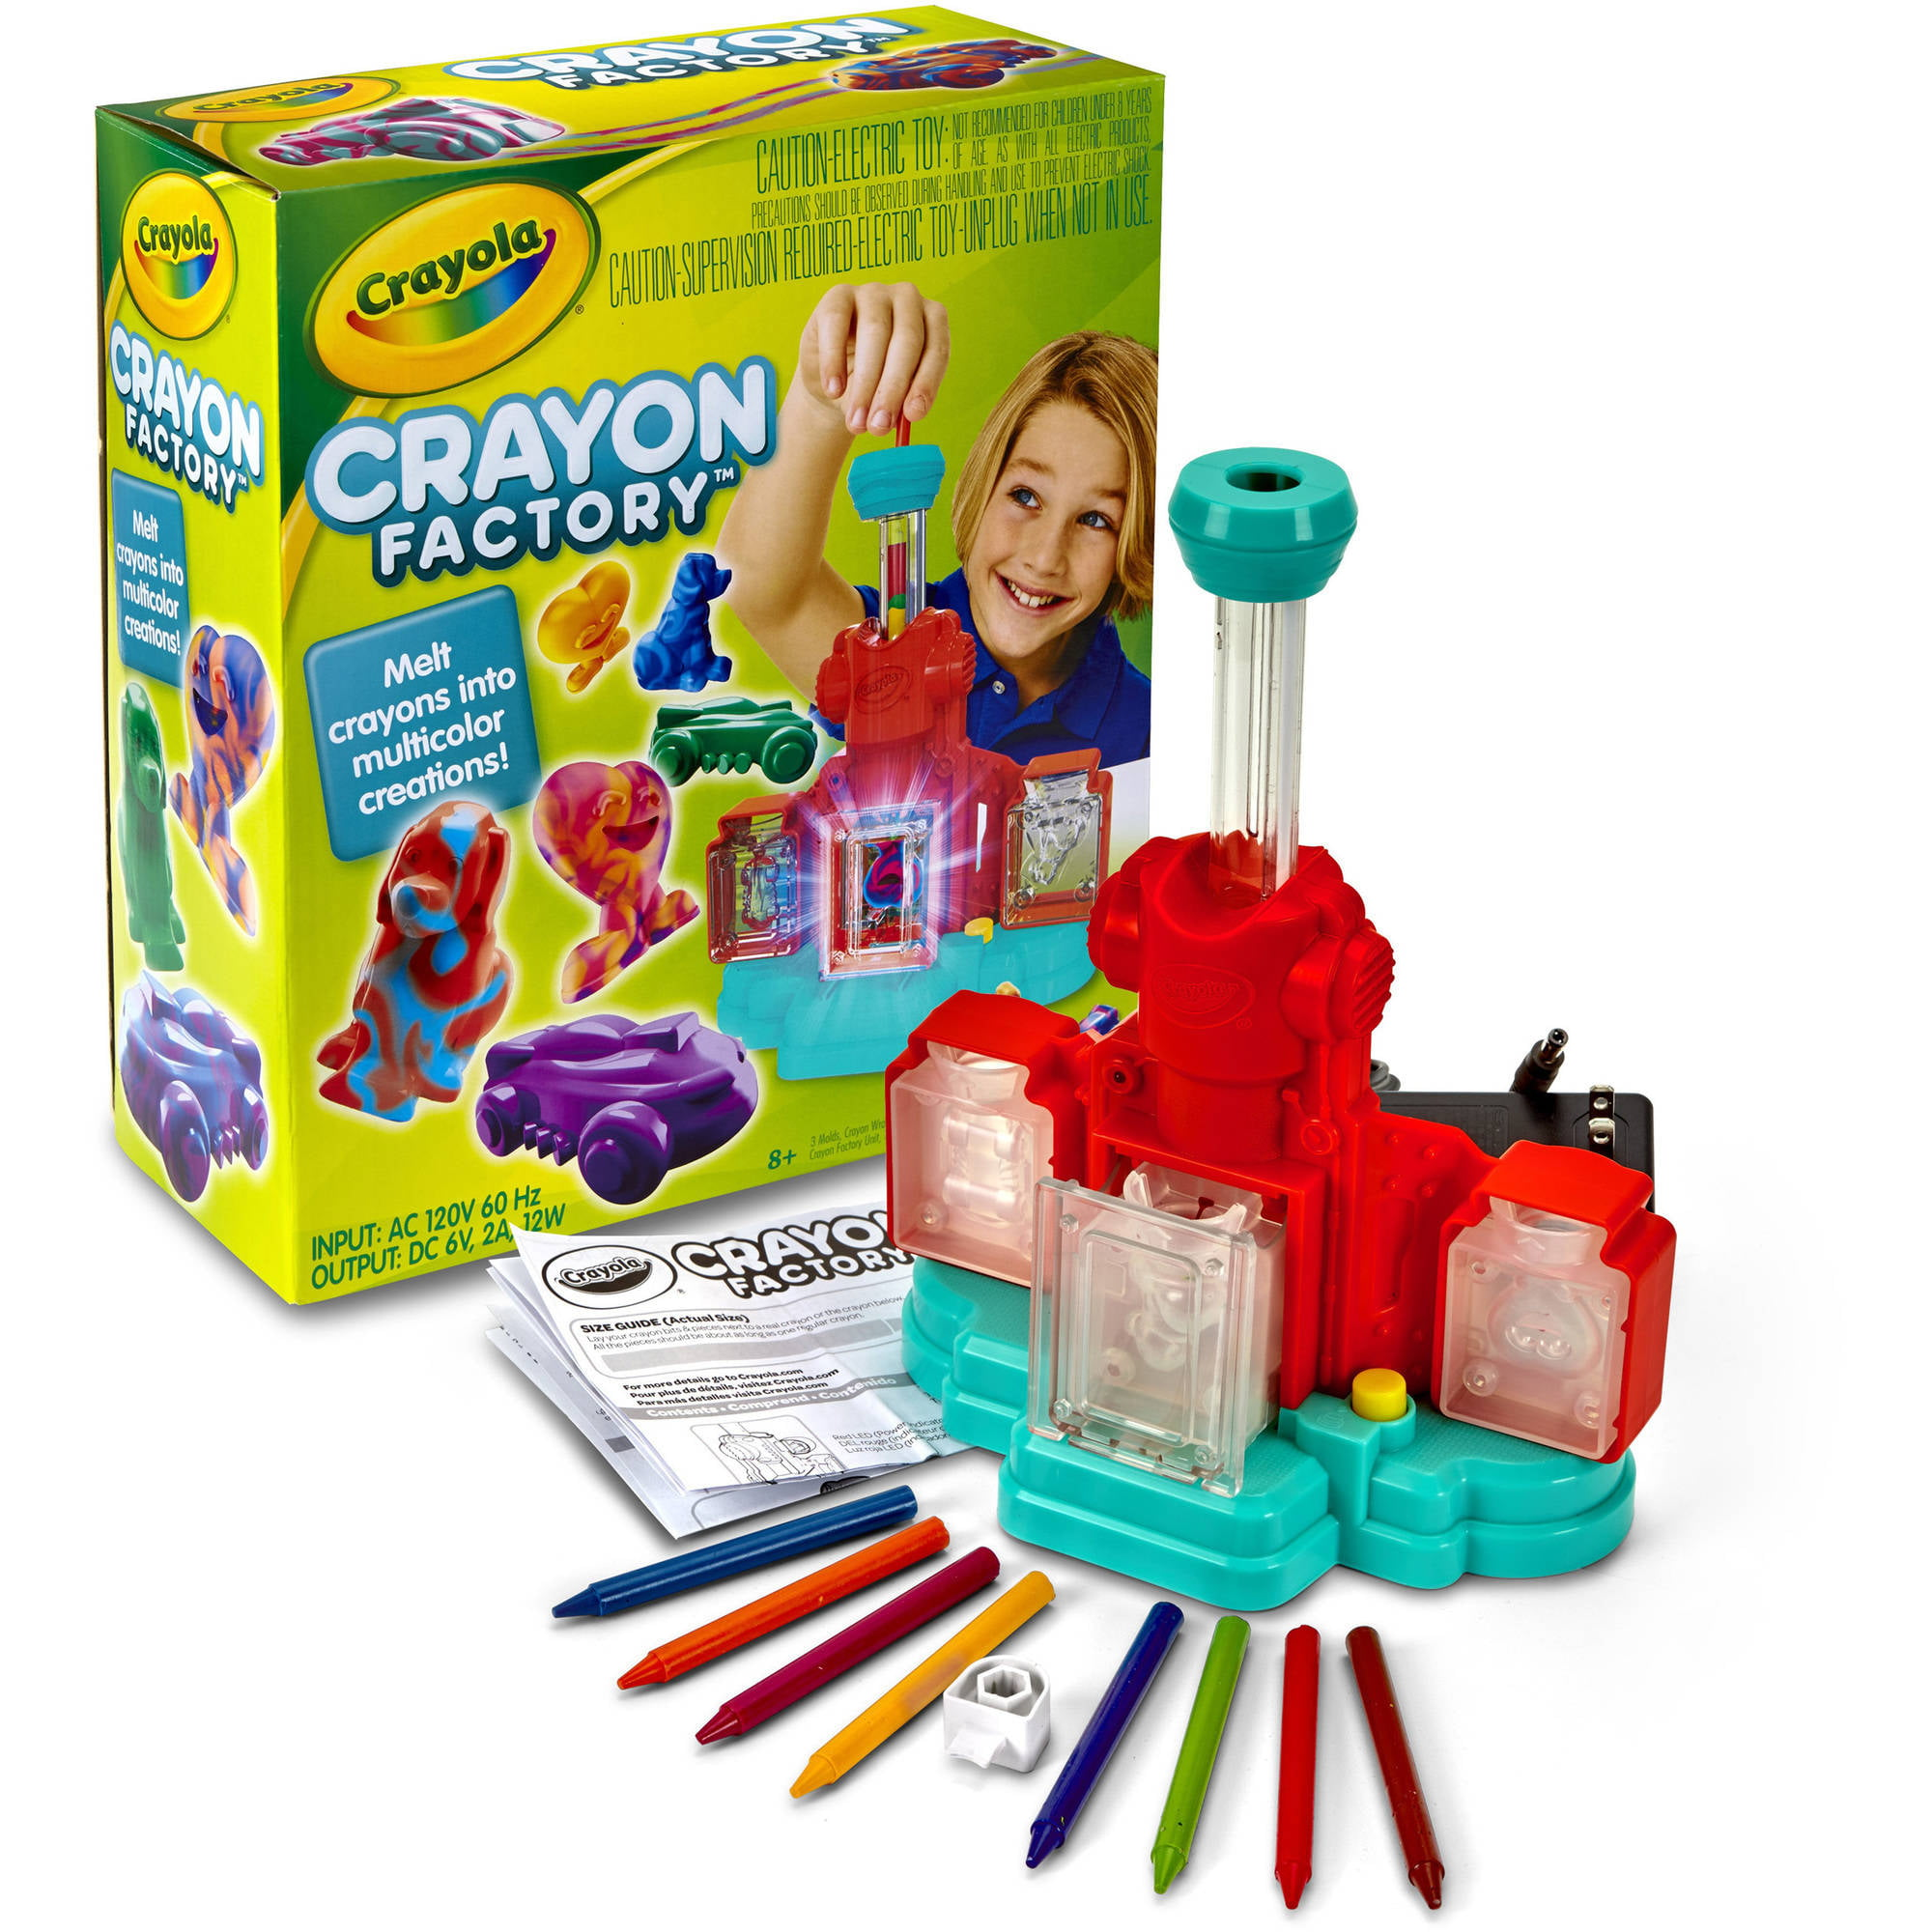 Crayola Crayon Factory for Kids by Crayola